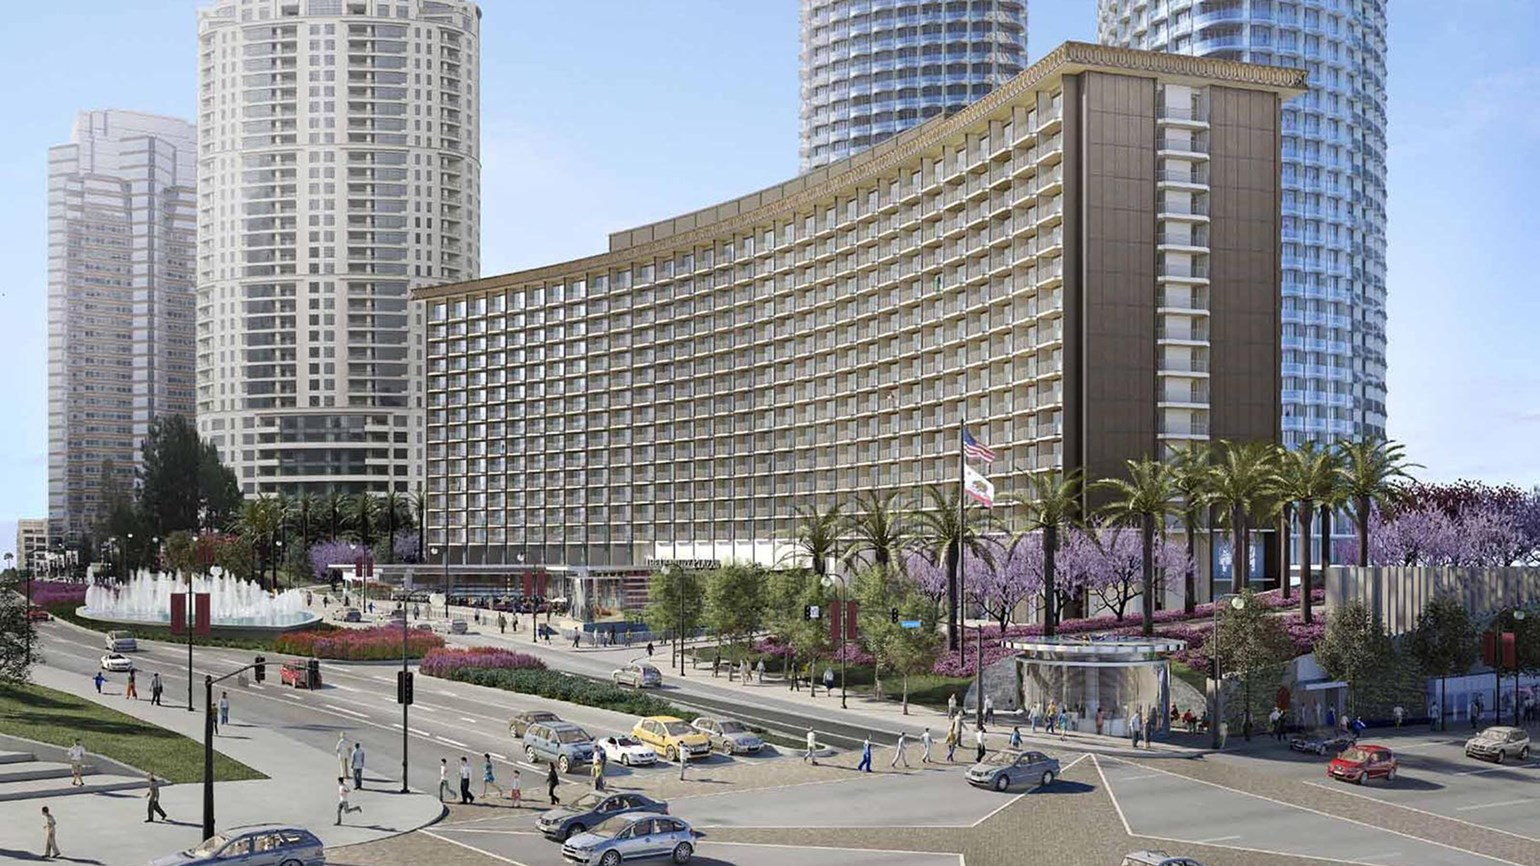 Fairmont will take over Los Angeles' iconic Century Plaza